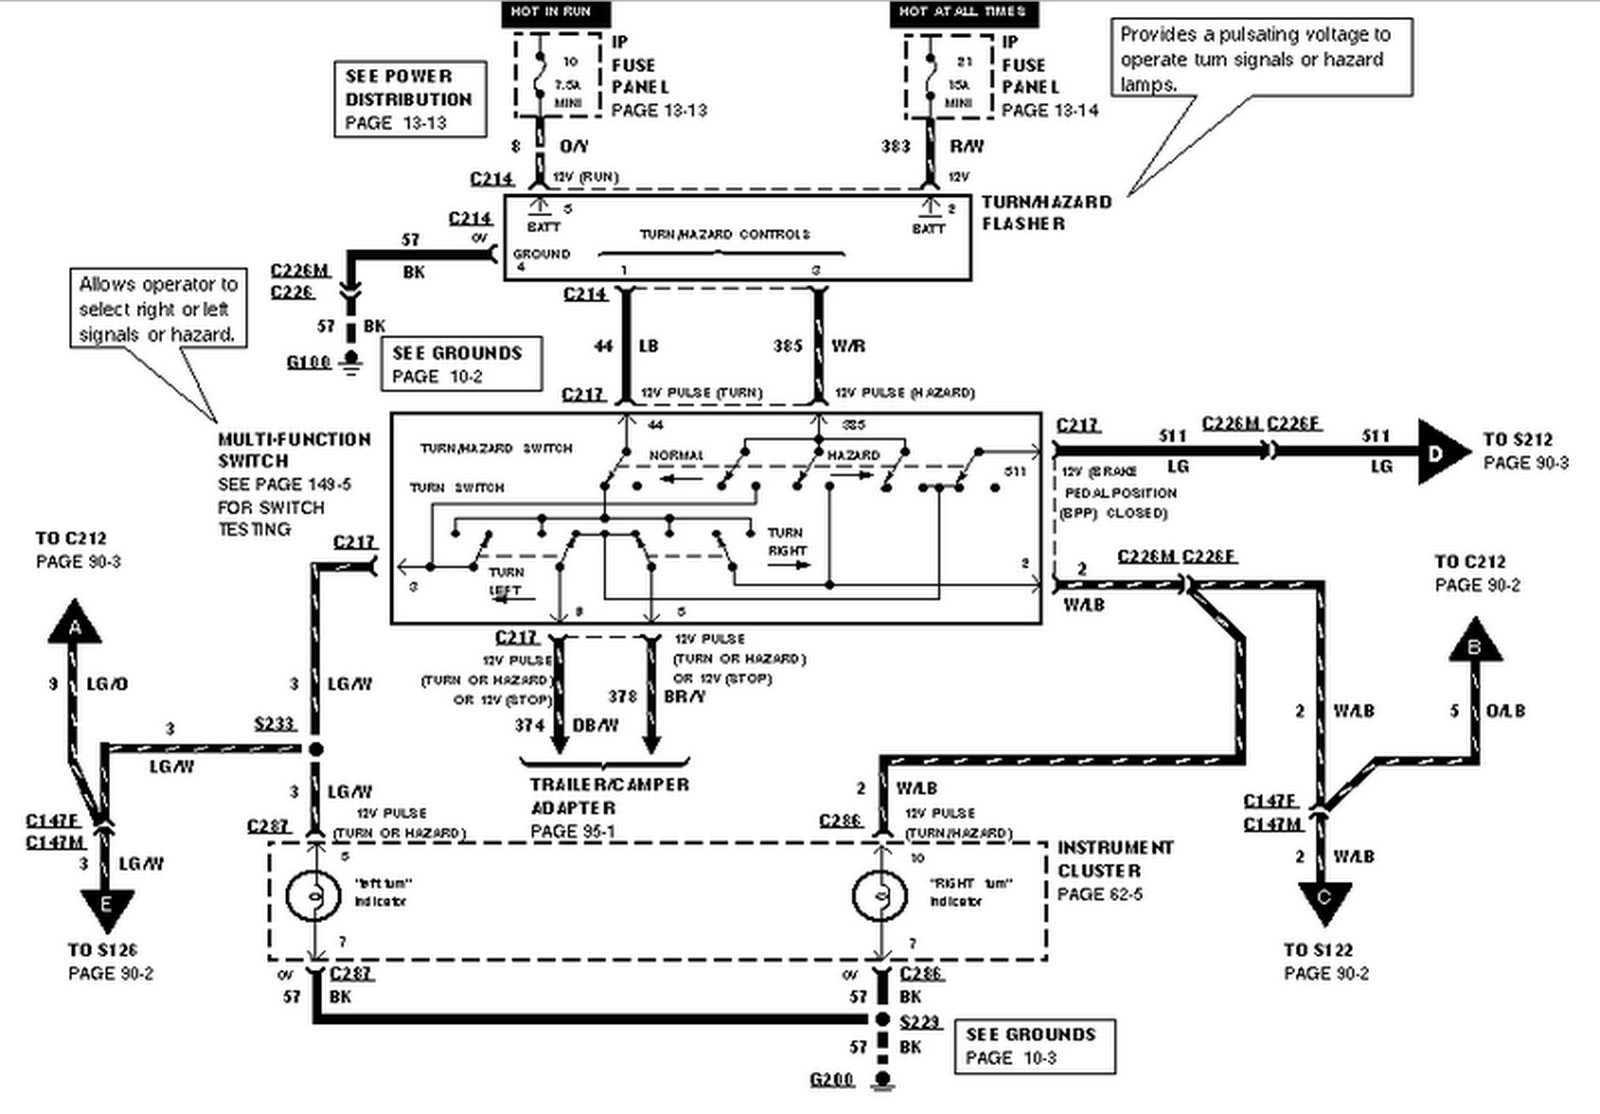 Ford Explorer Wiring - Wiring Diagram | 2015 Ford Explorer Wiring Diagrams |  | Wiring Diagram